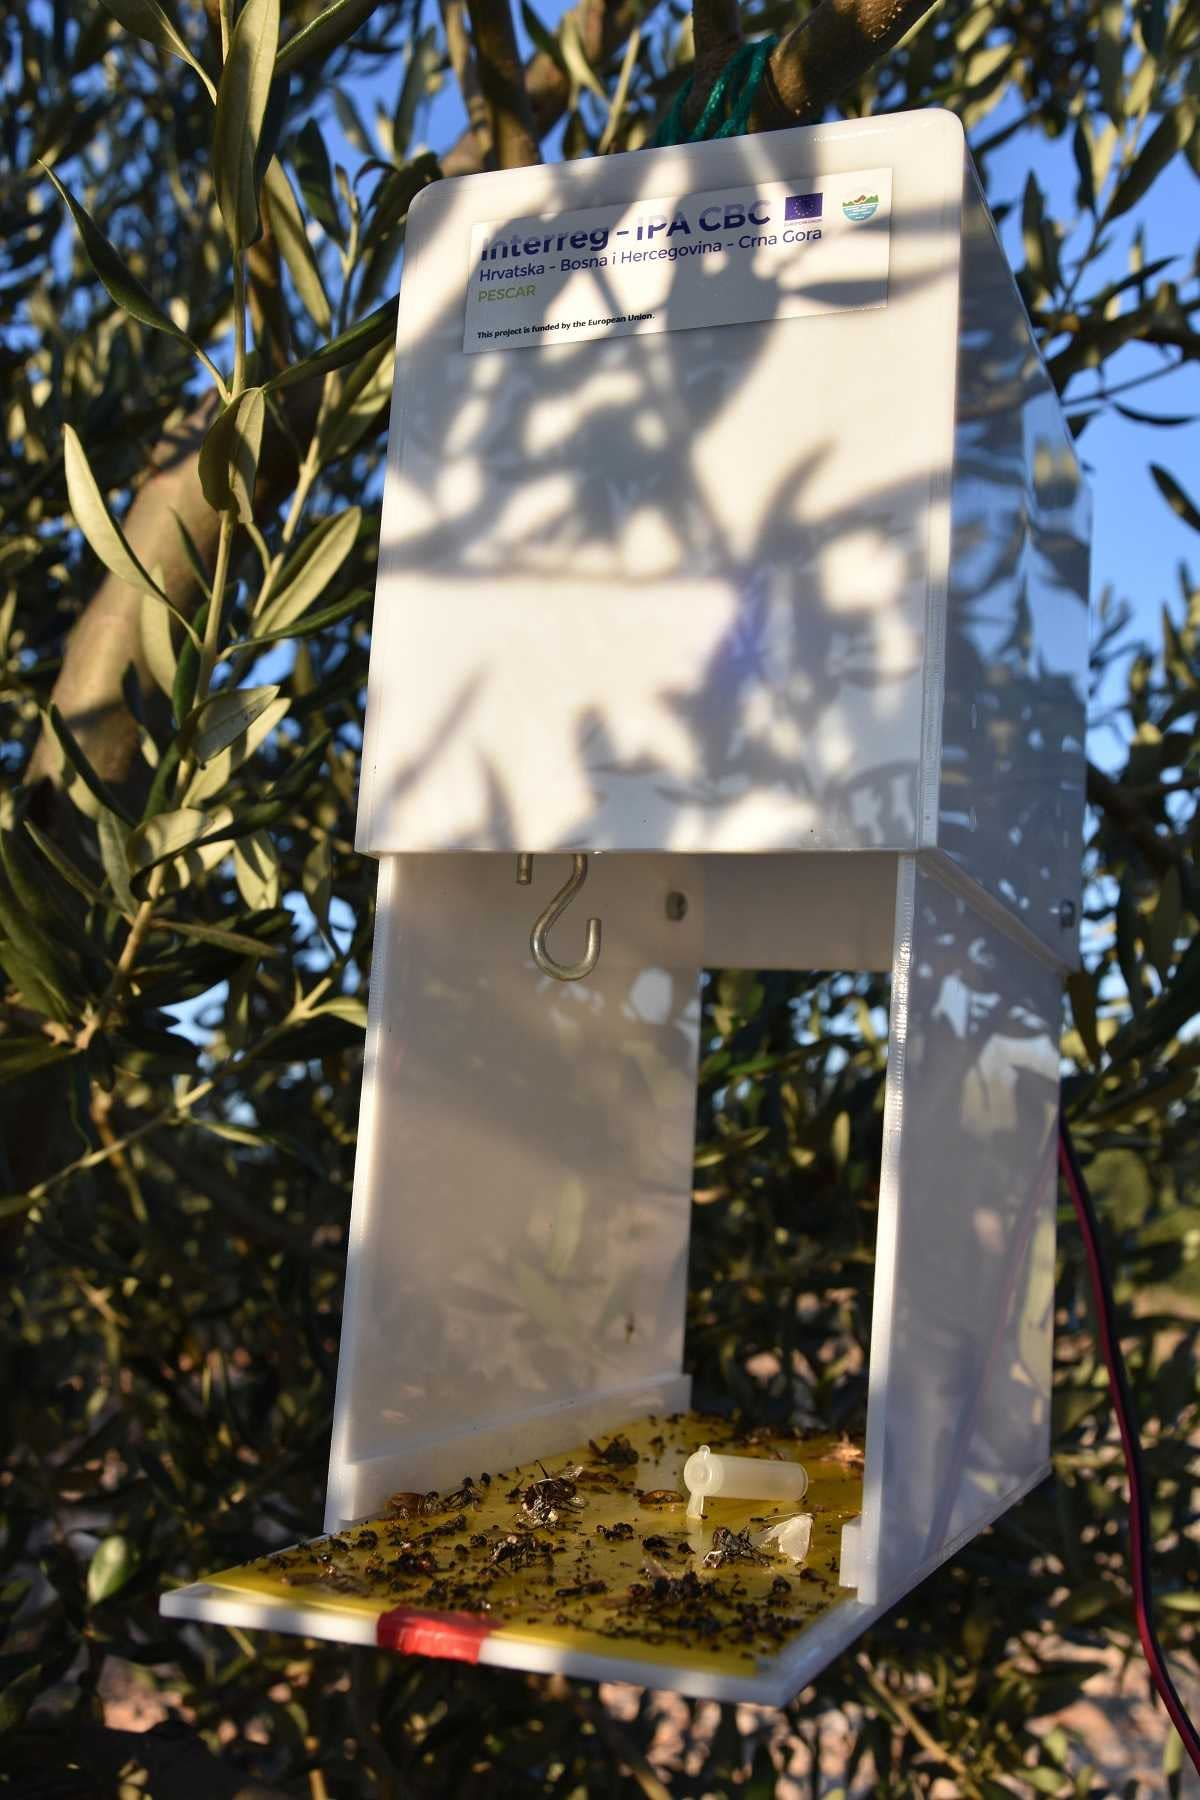 profiles-production-tragedy-inspires-one-croatian-family-to-grow-olives-olive-oil-times